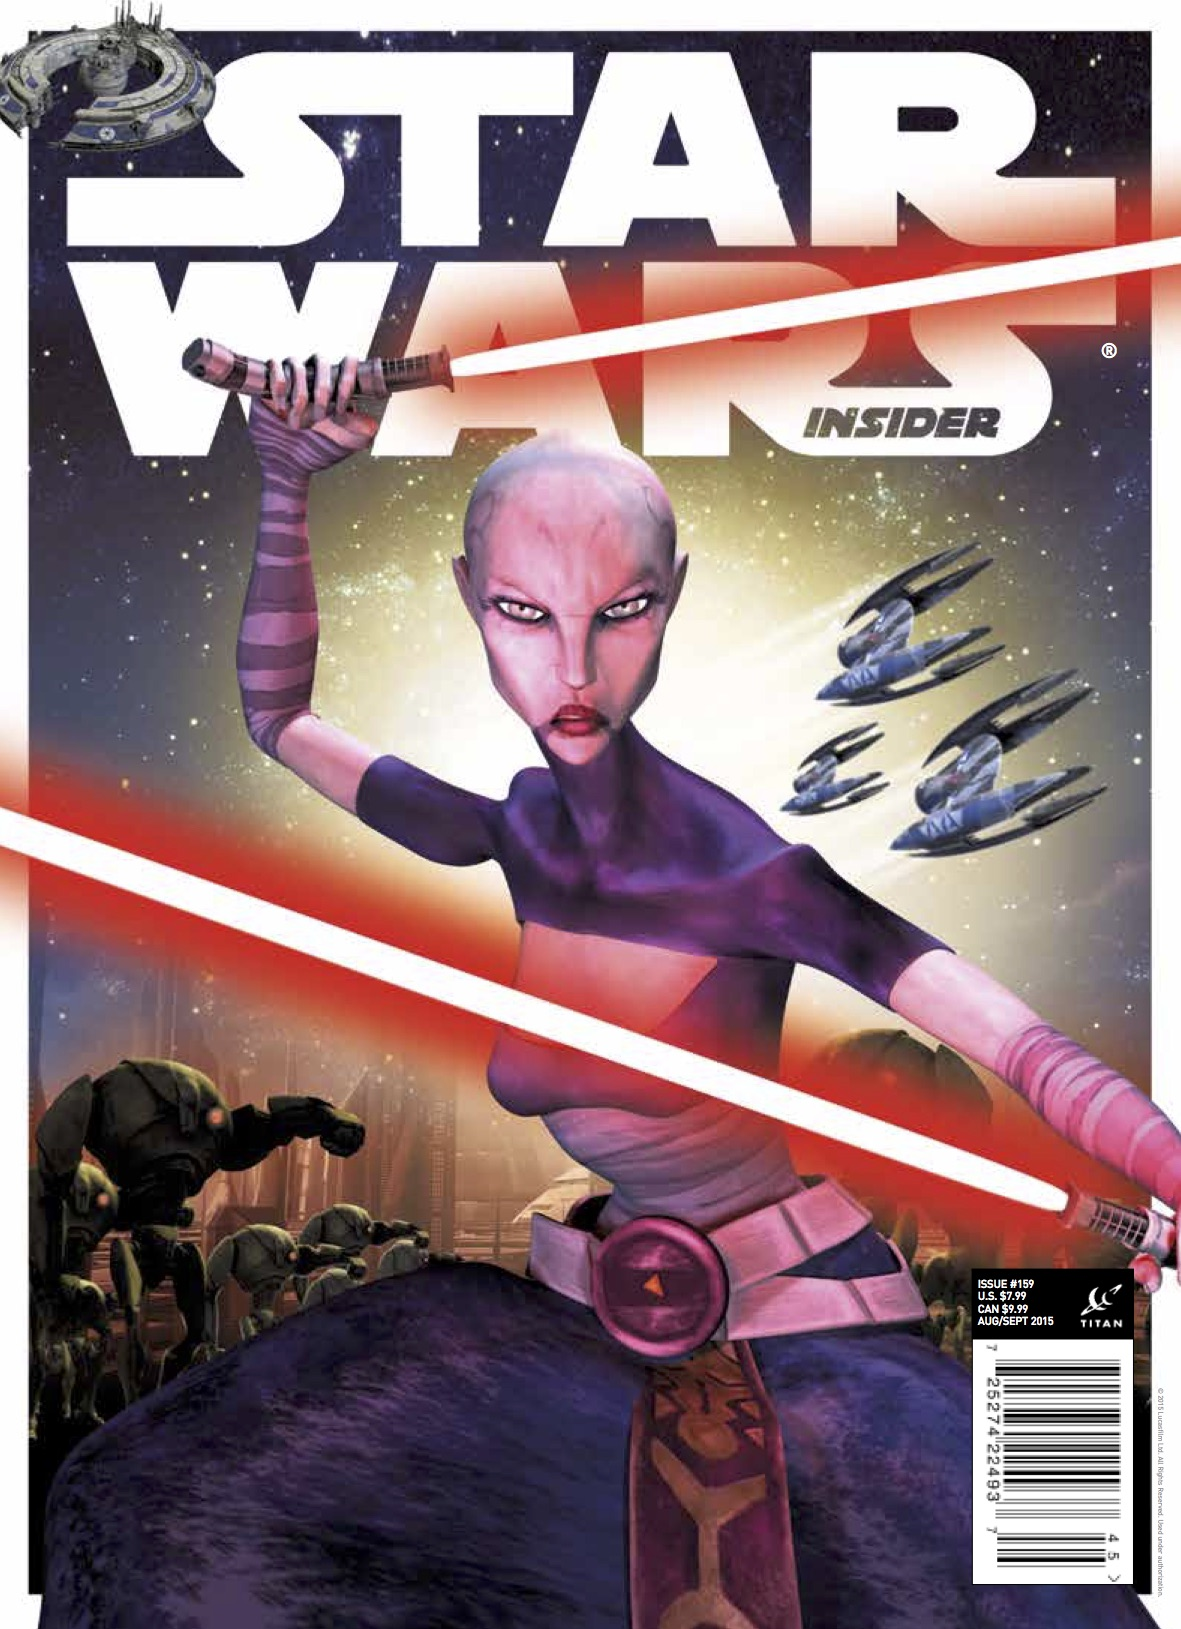 Star Wars Insider #159 (Comic Store Cover)